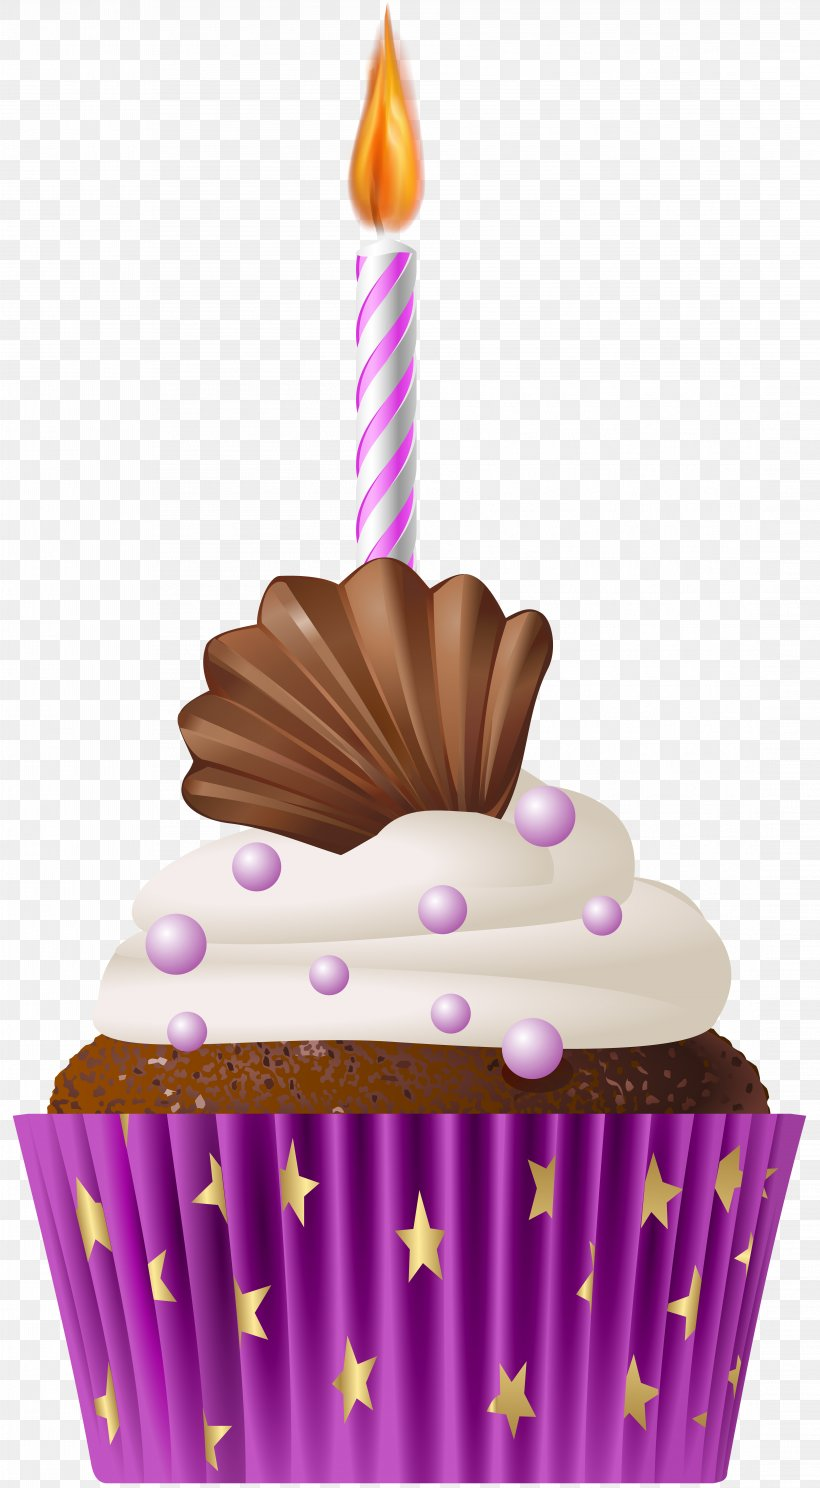 Muffin Cupcake Birthday Cake Clip Art, PNG, 4407x8000px.